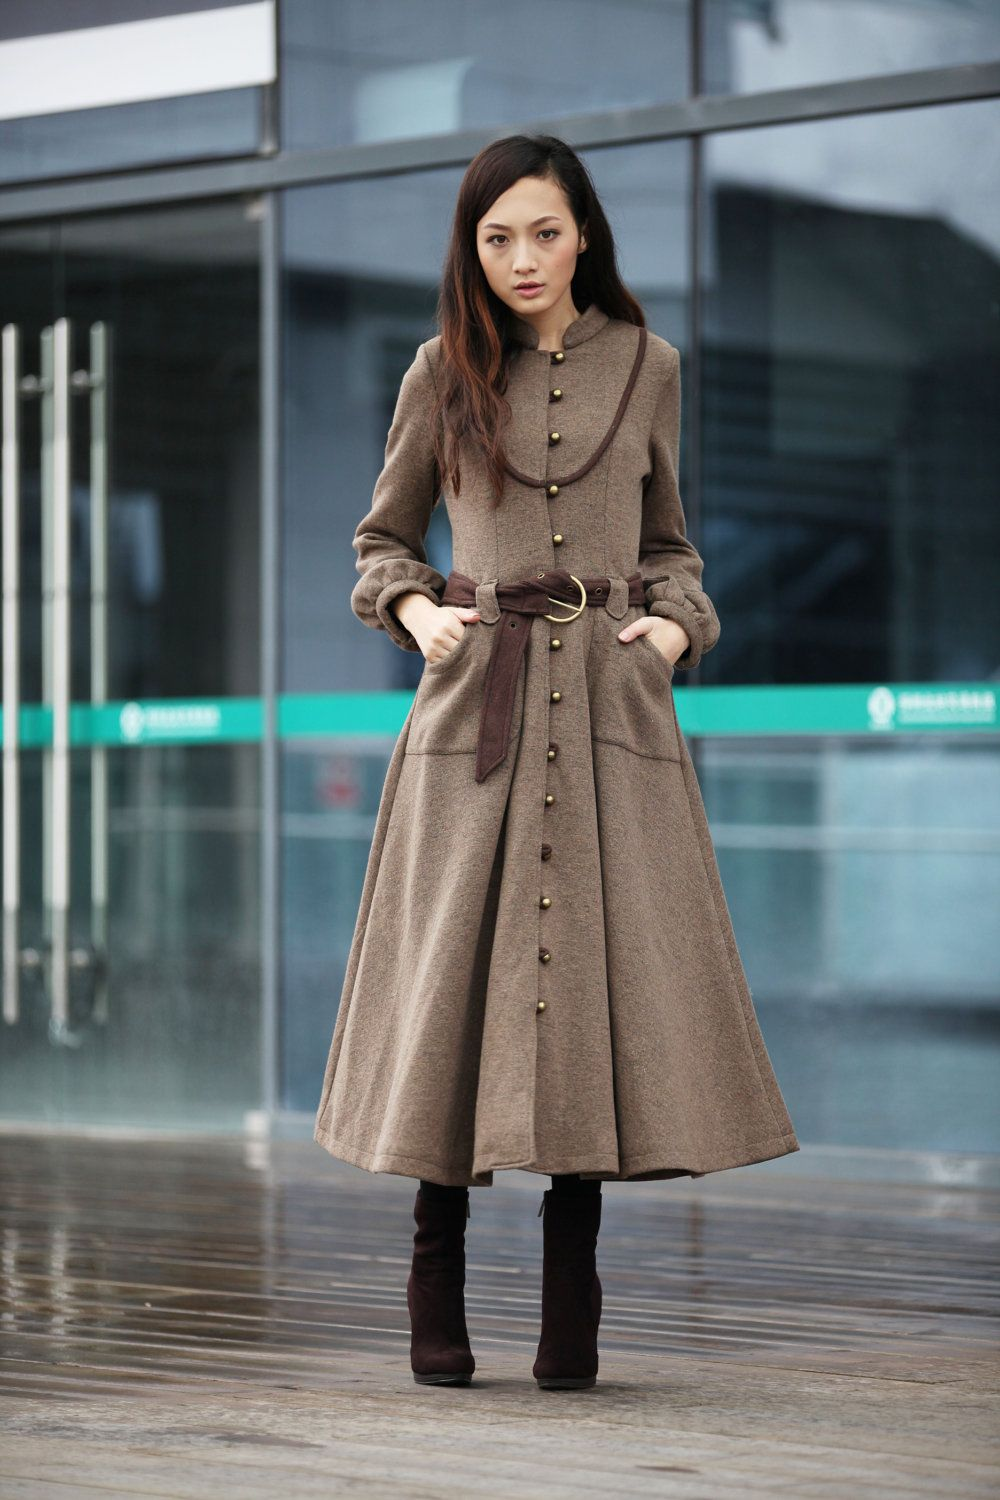 78 Best images about Coats & Jackets on Pinterest